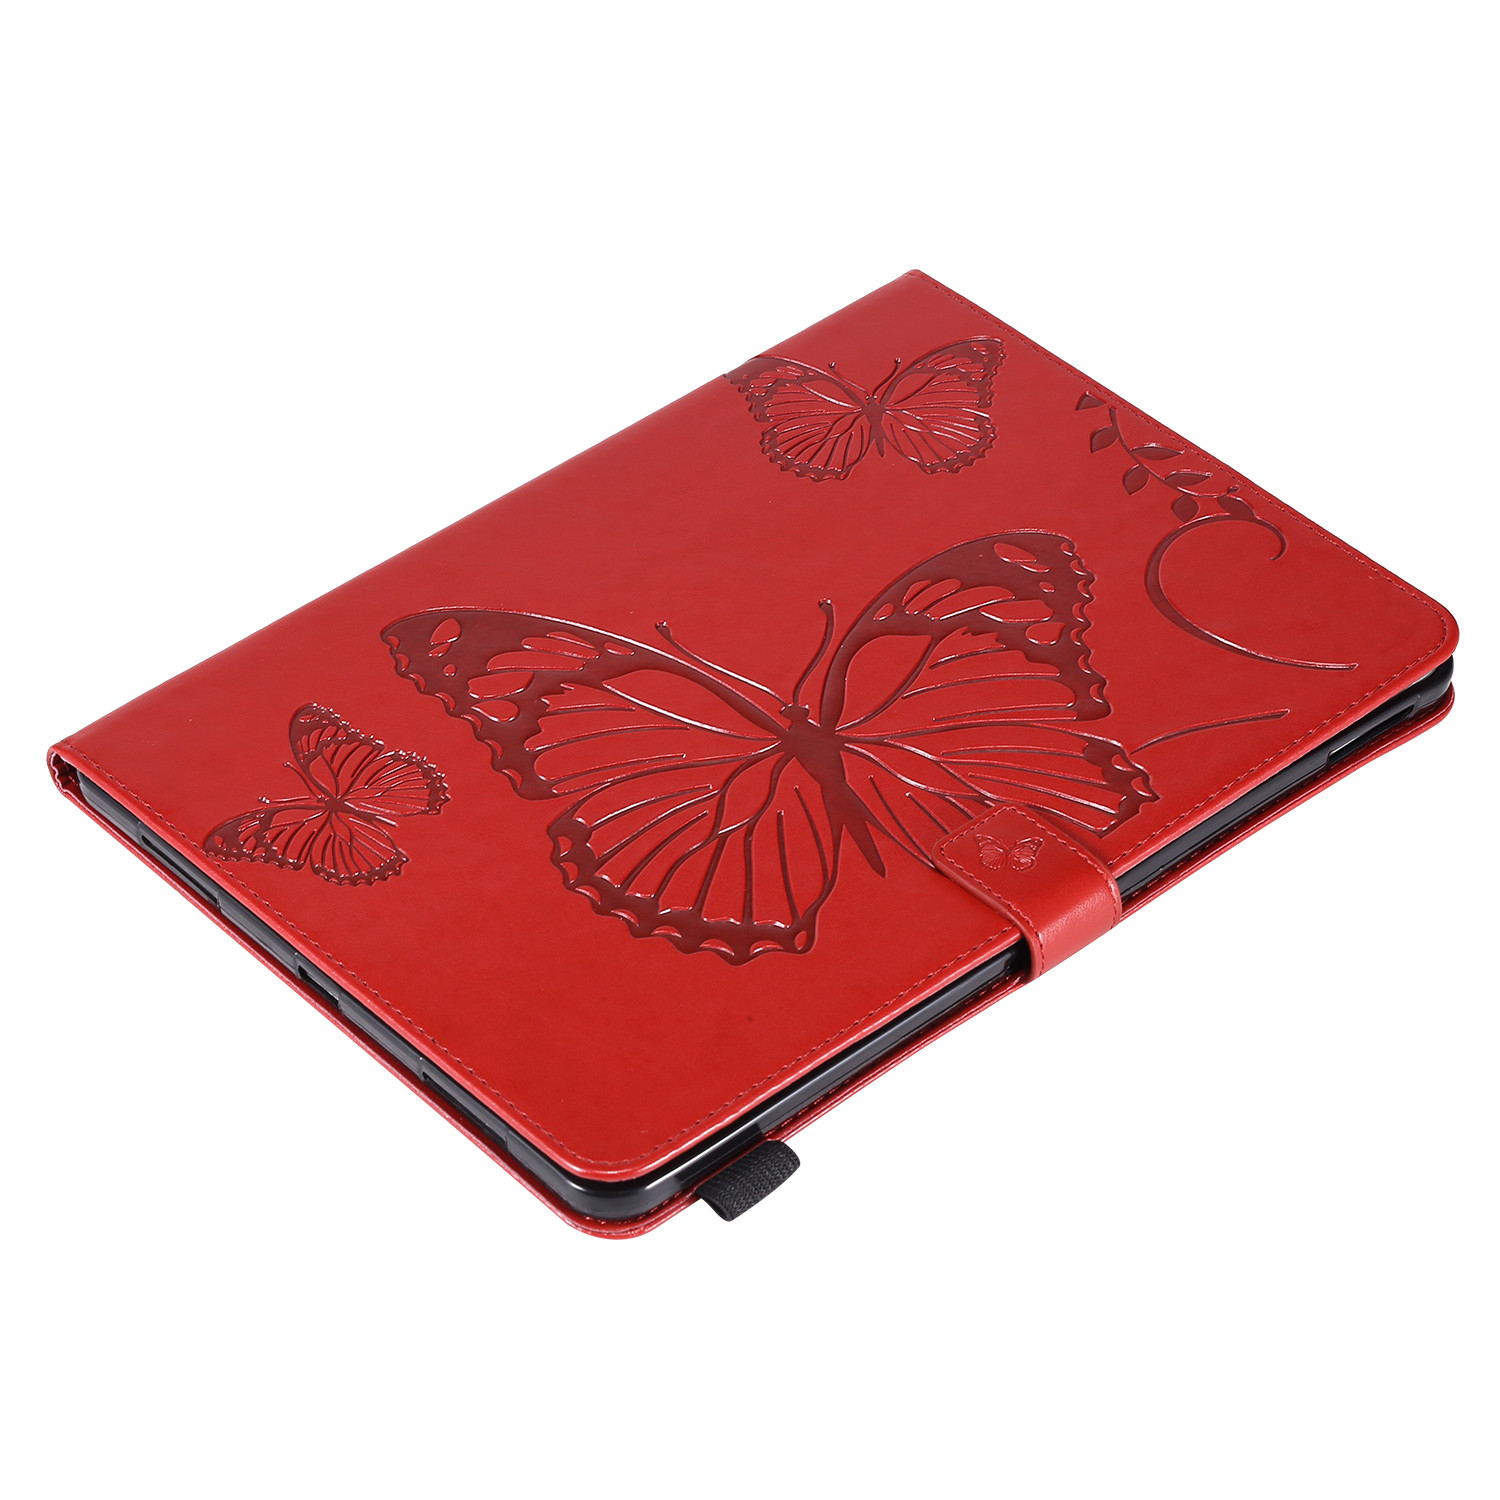 7 Gray Butterfly Tablet Fundas For iPad Pro 12 9 Case 2020 2018 Folding Folio Embossed Cover For